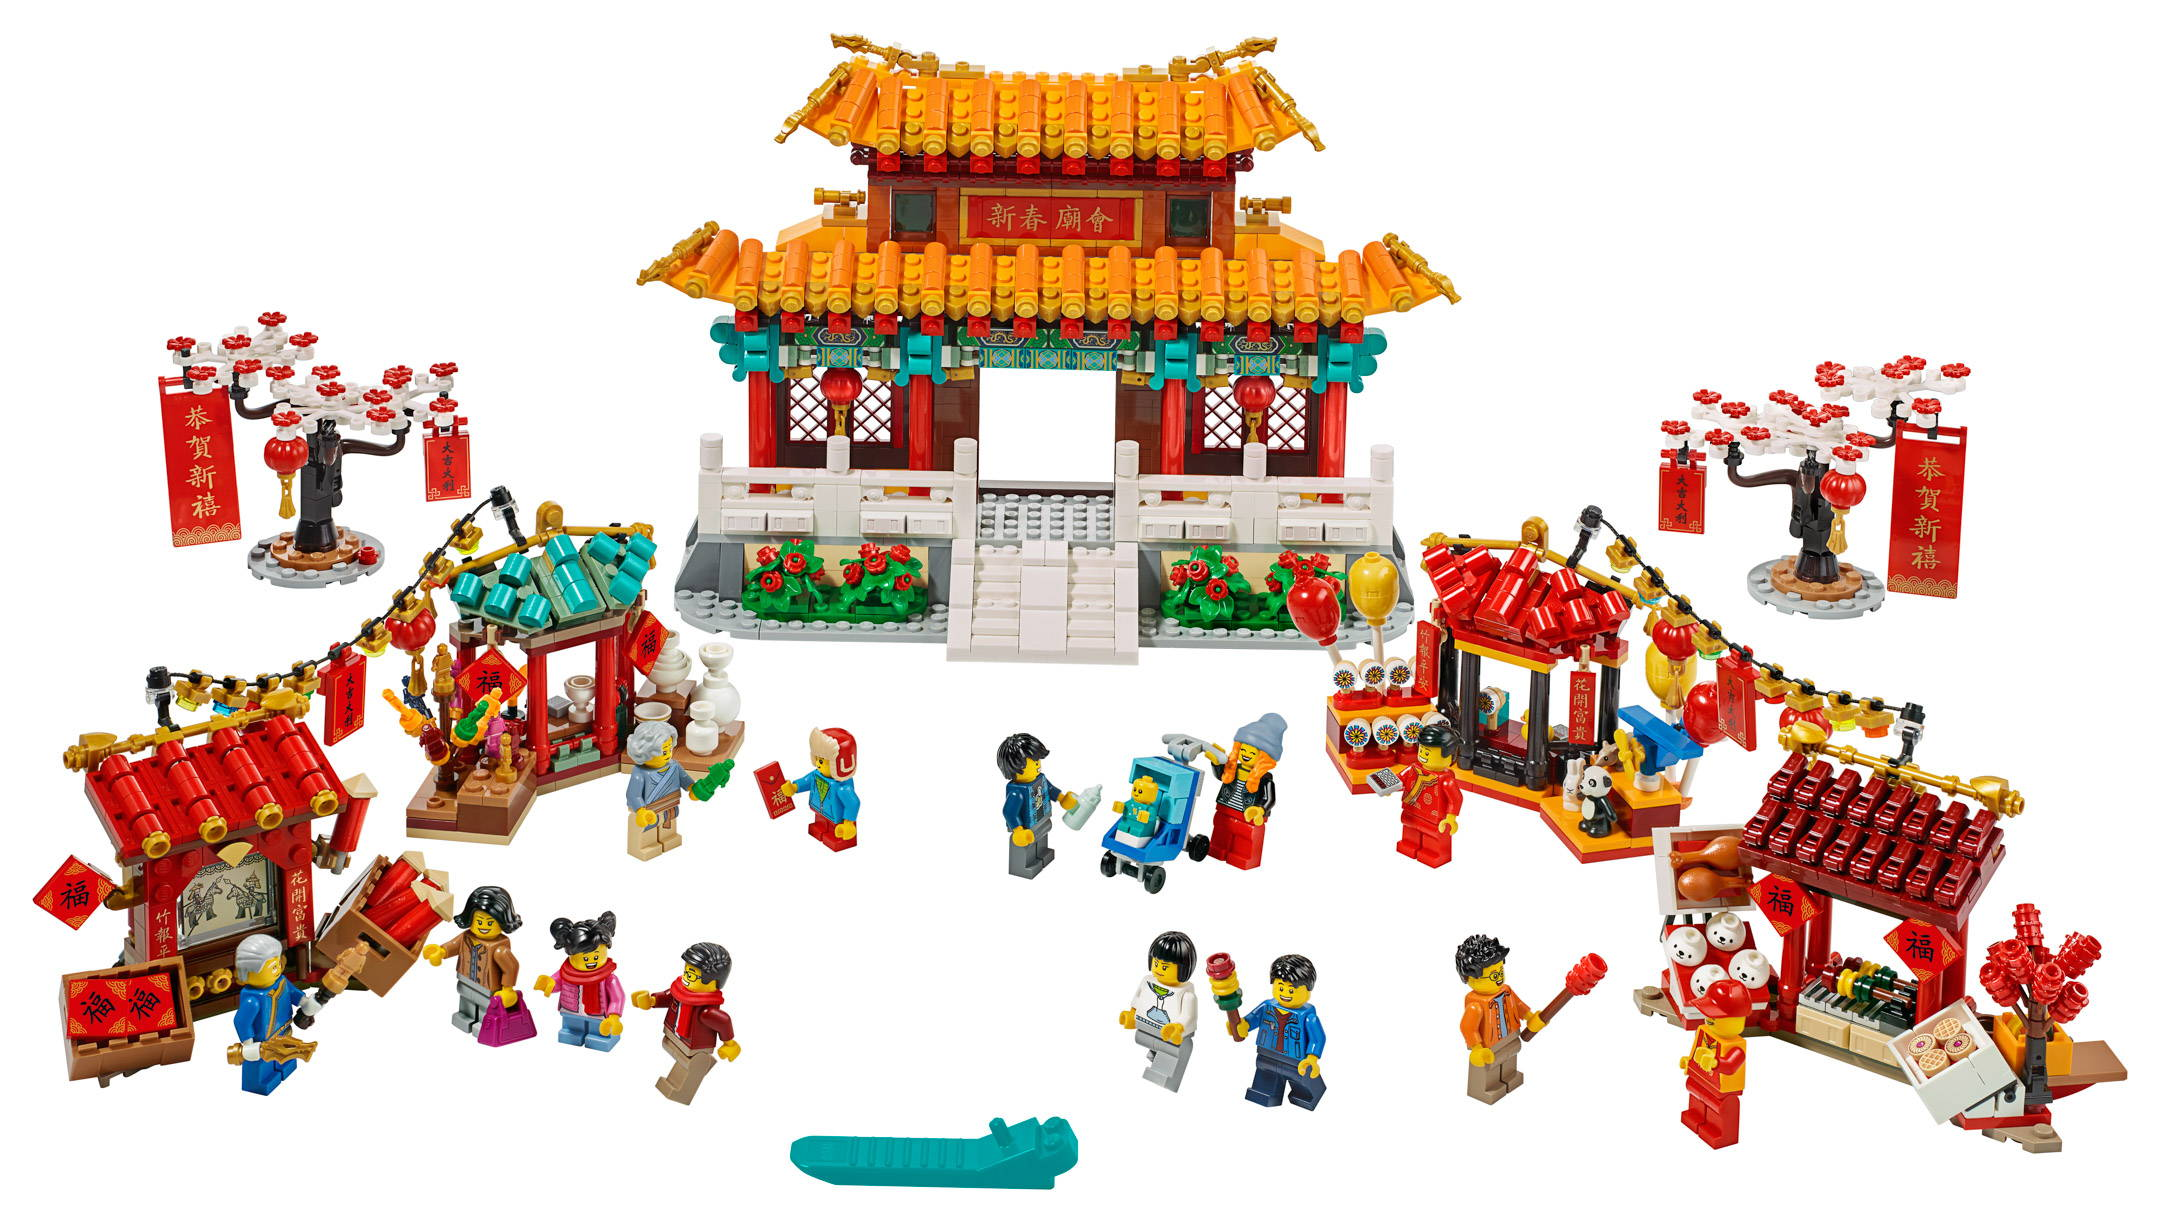 lego 80105 set included